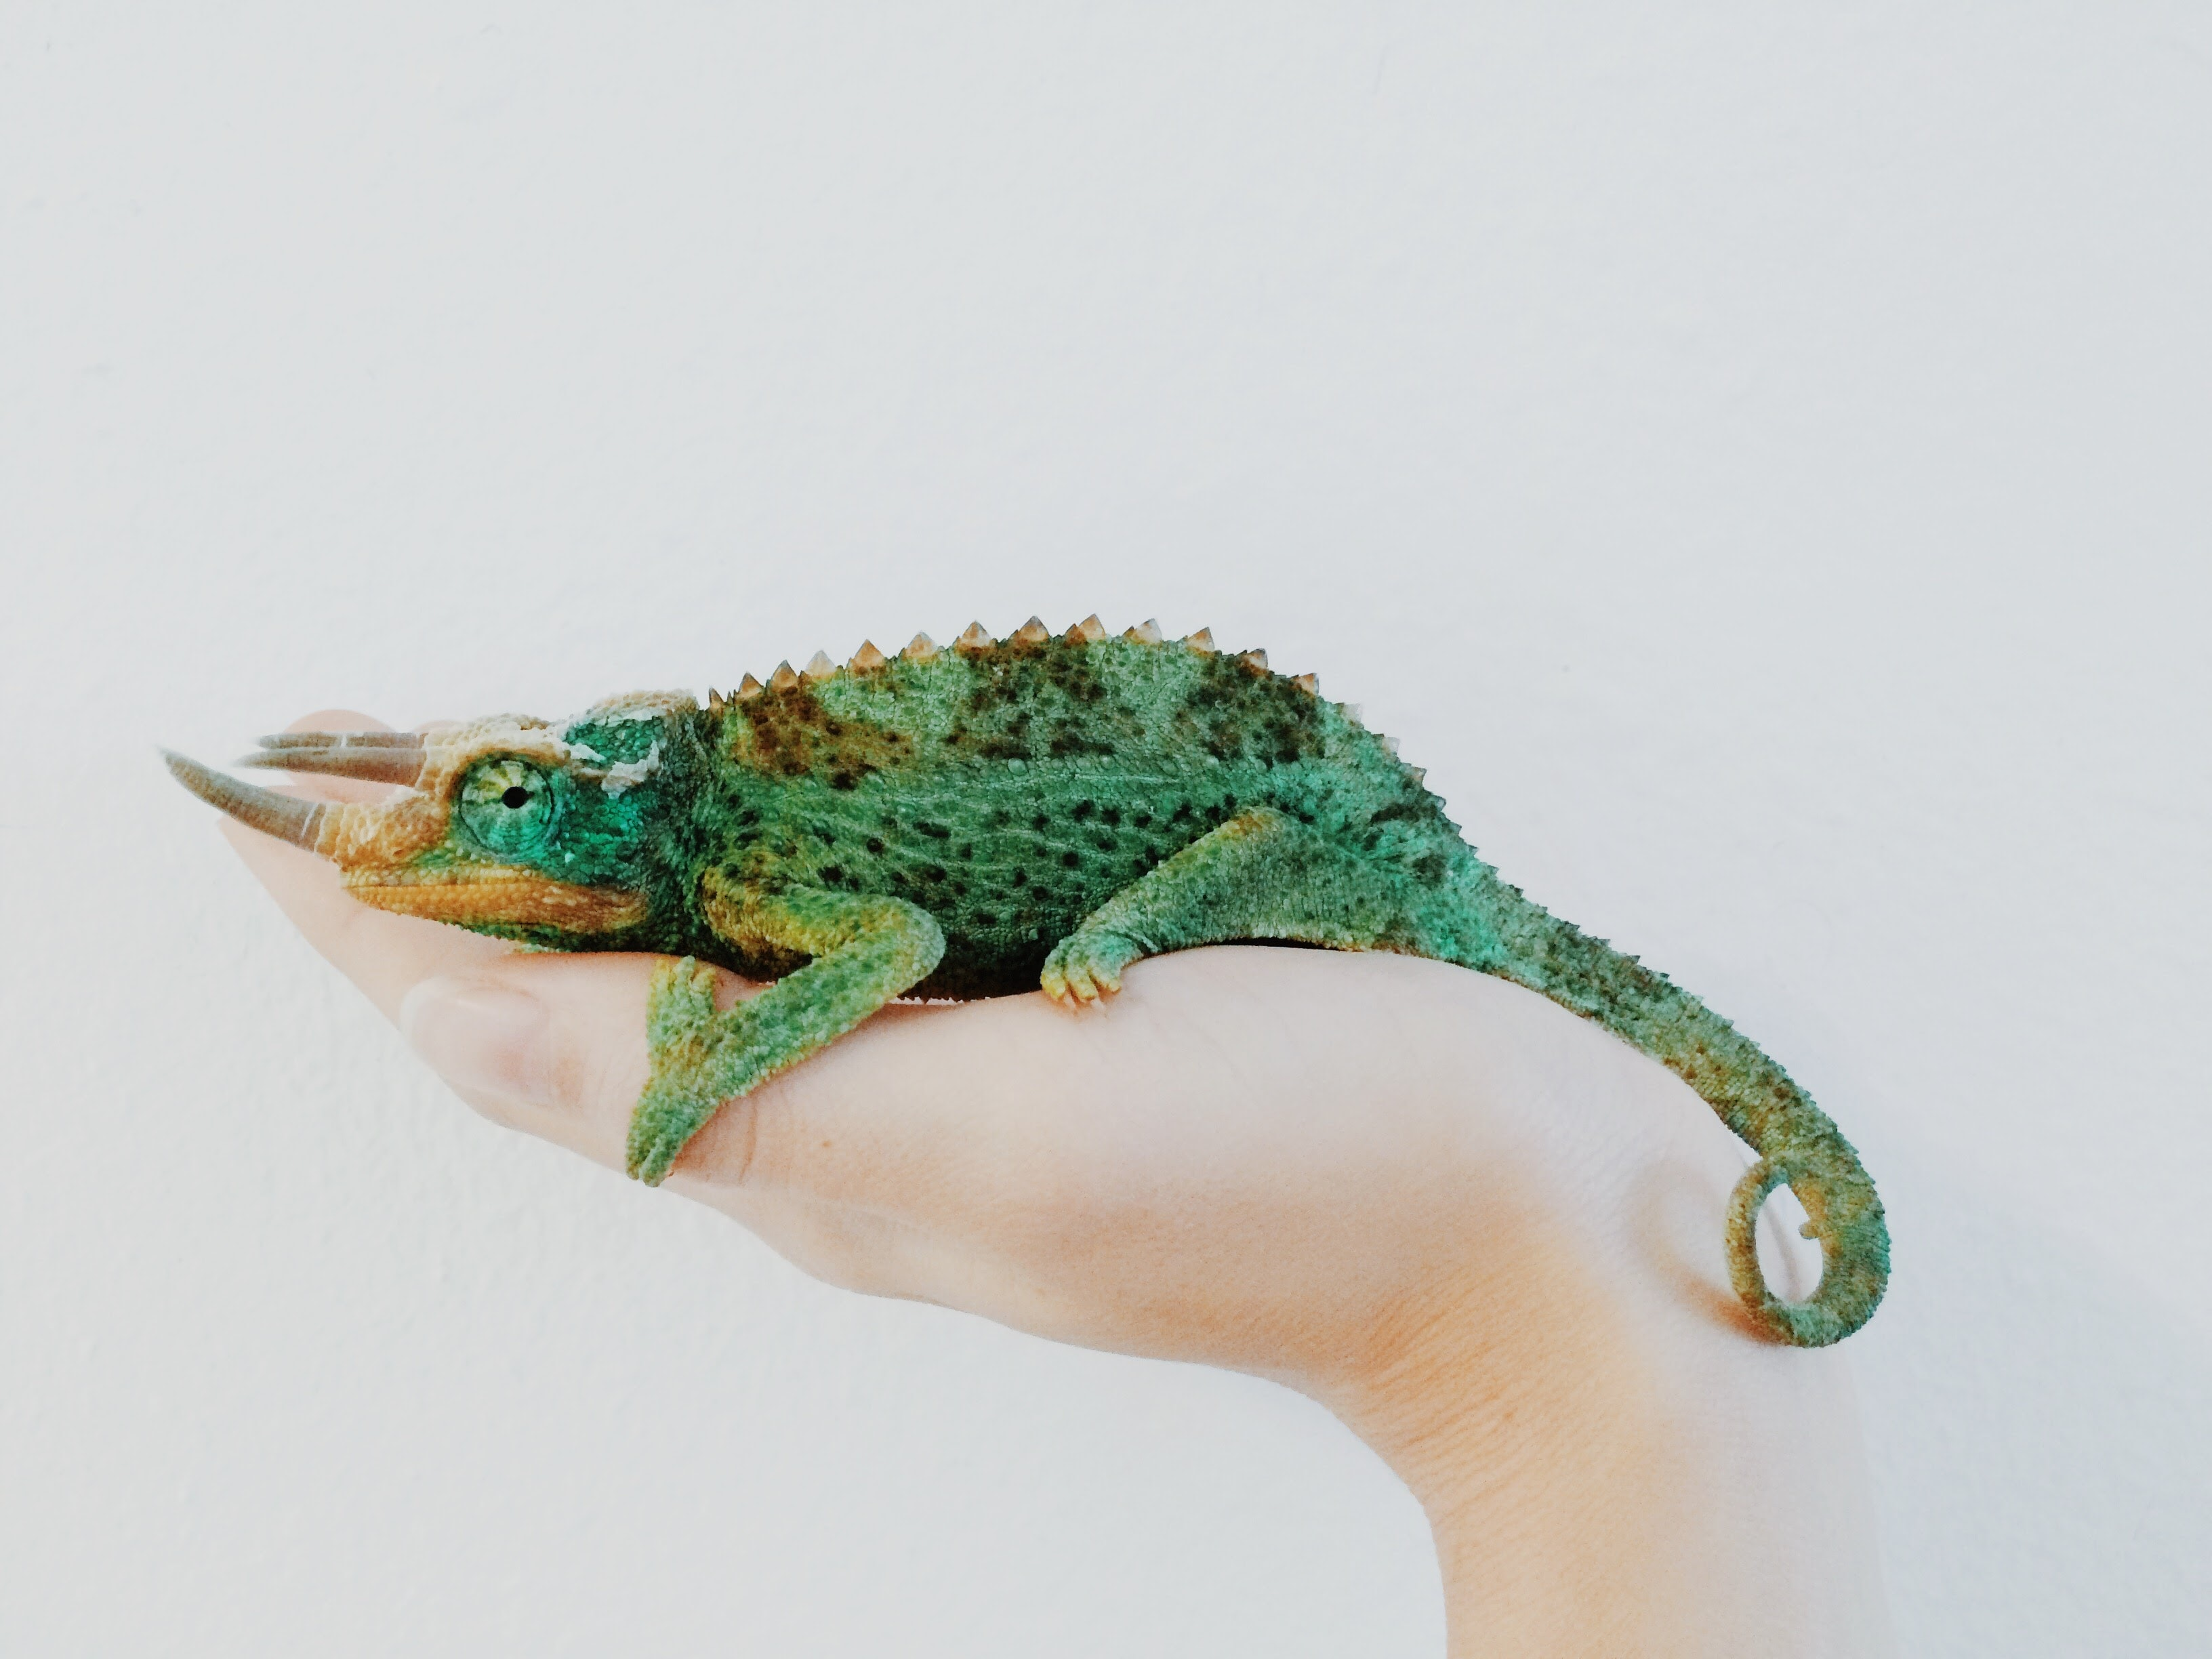 person holding green chameleon